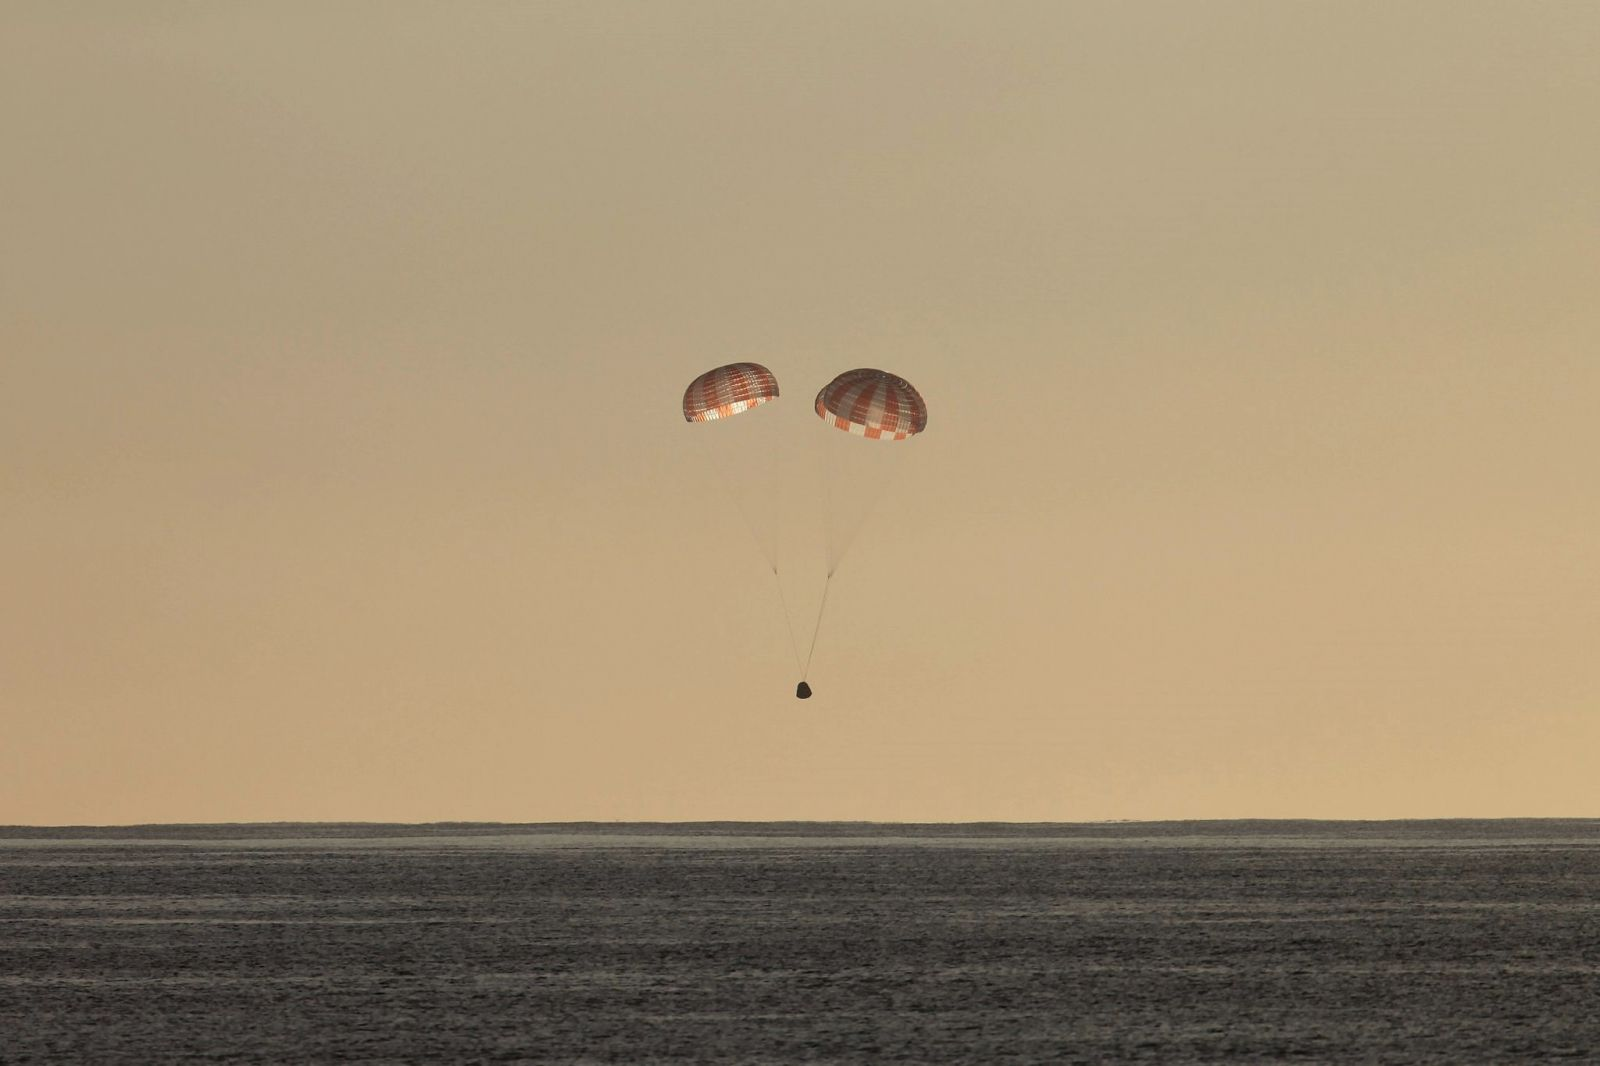 The SpaceX Dragon capsule is pictured seconds before splashing down in the Pacific Ocean. Photo Credit: SpaceX